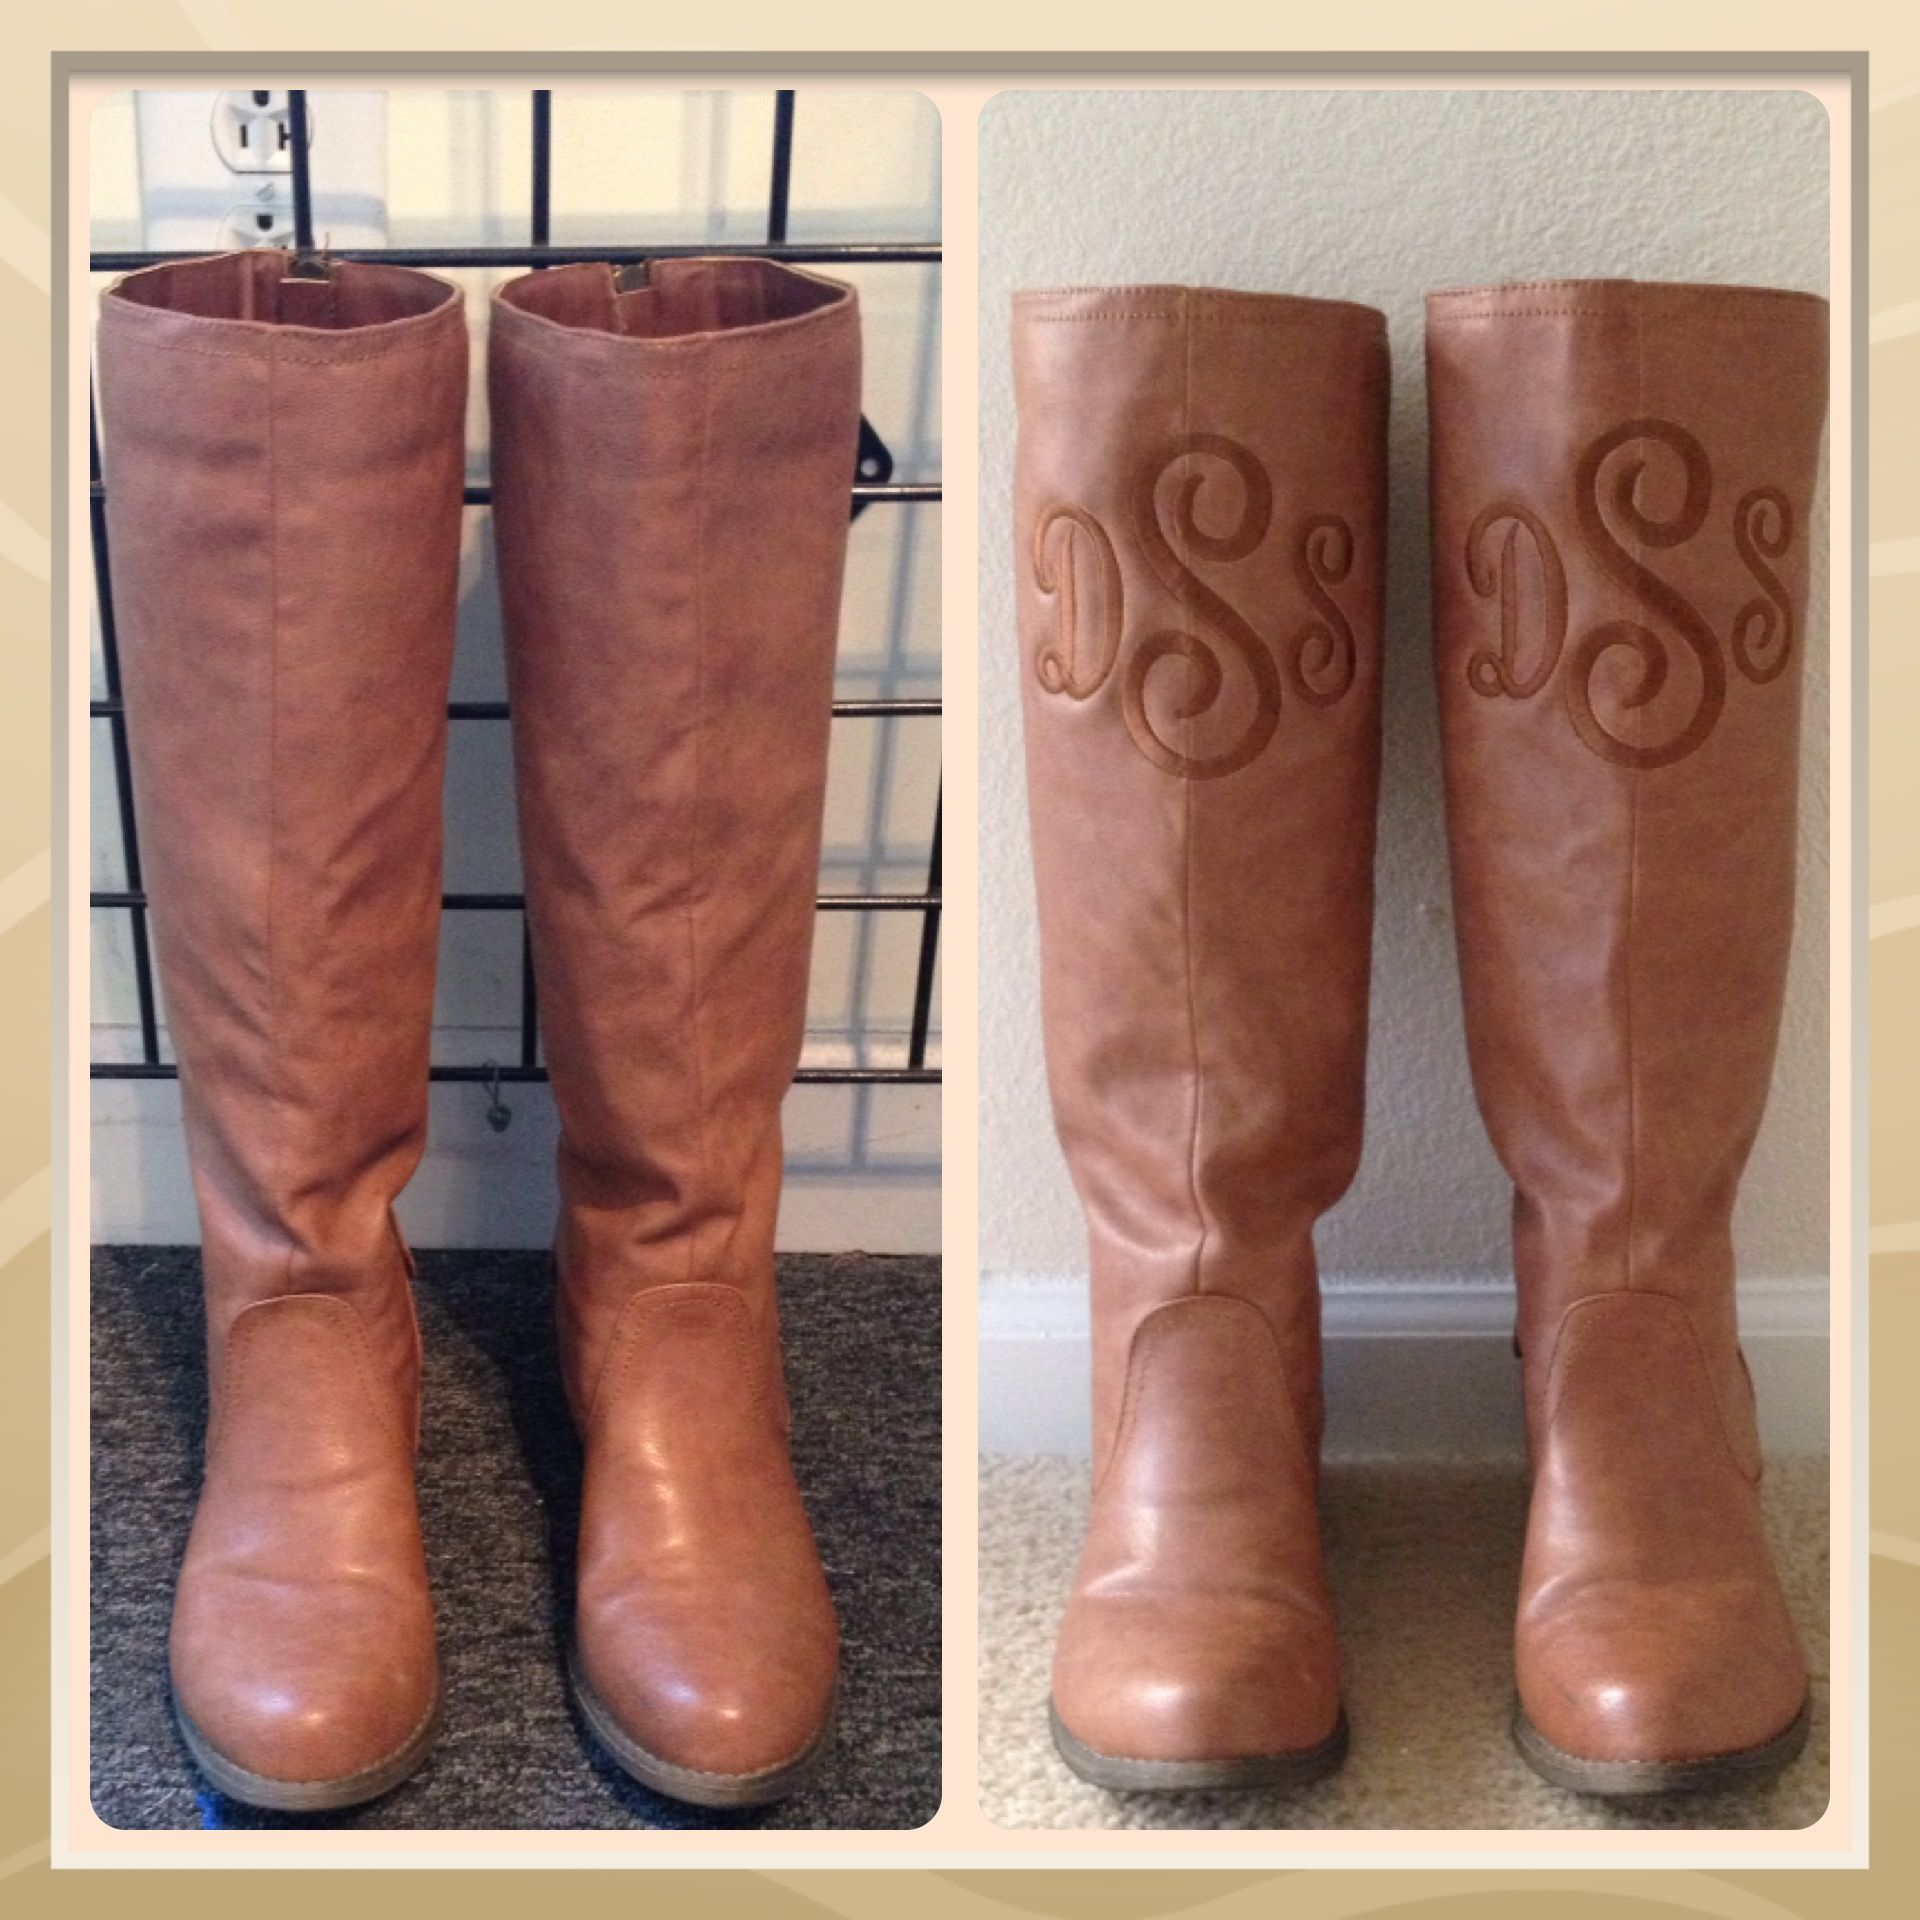 Monogrammed Boots Got These Last Spring At Belk For 1700 Went